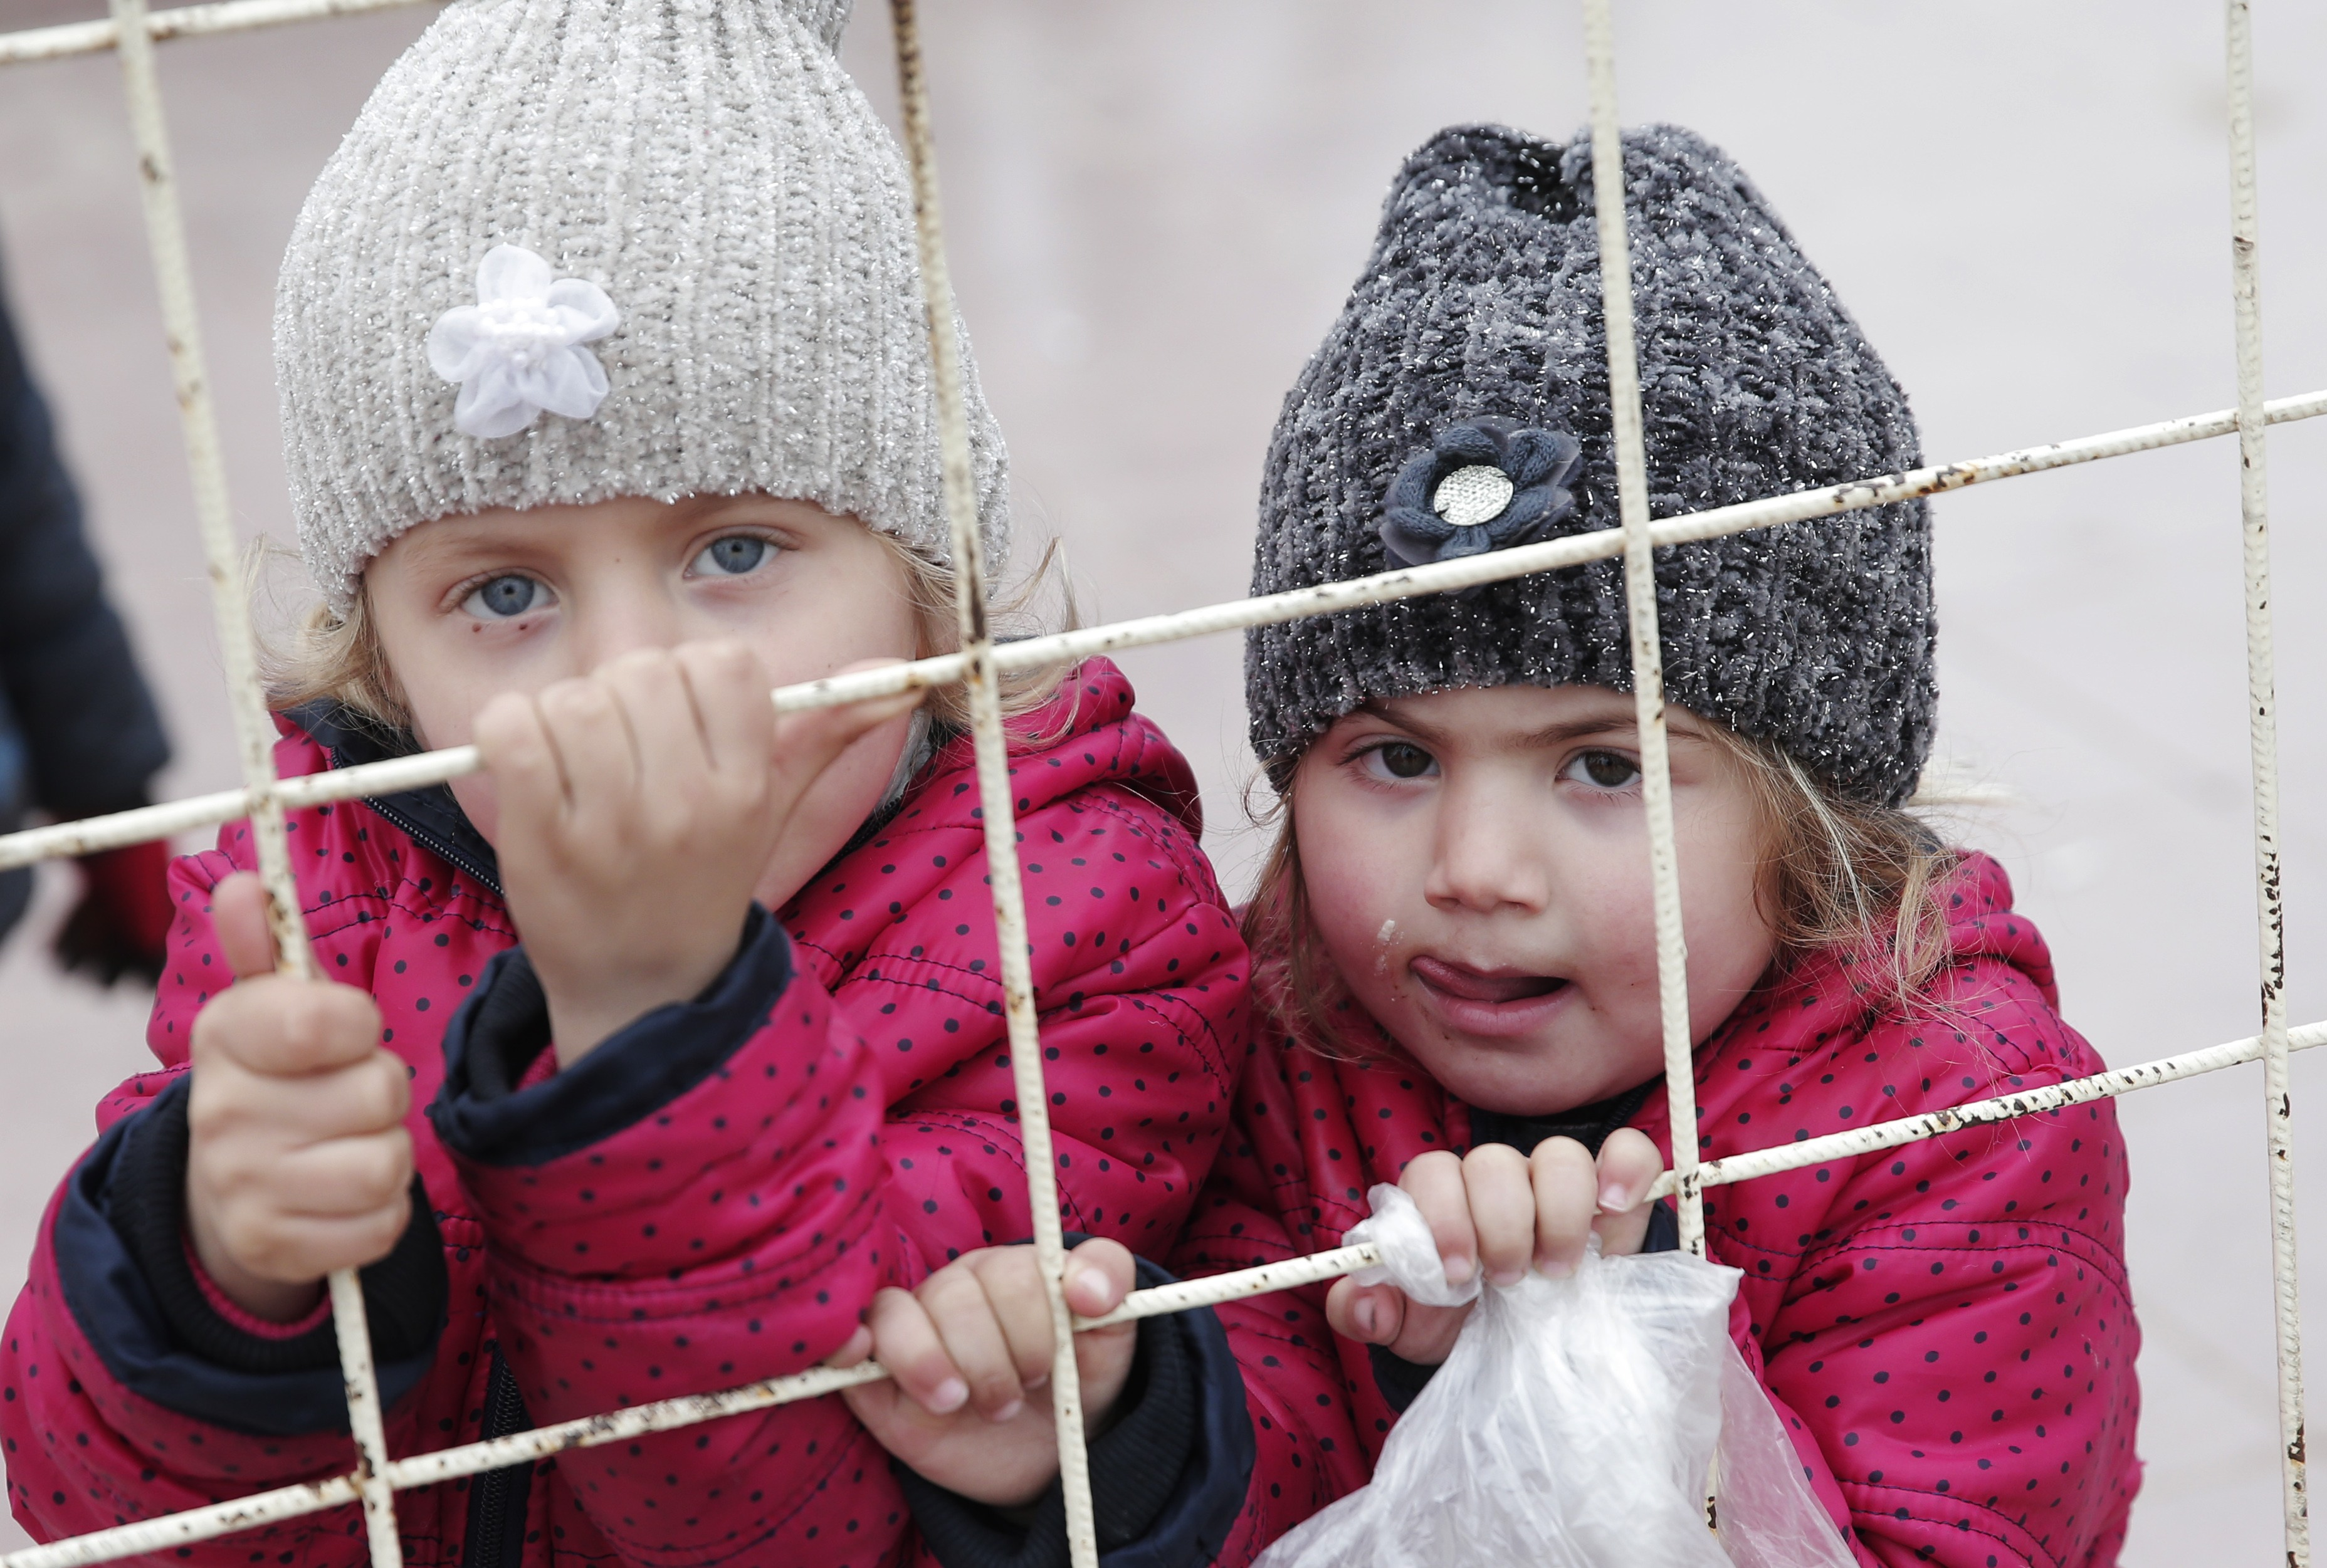 Syrian children wait to return to their country at the Turkish border crossing with Syria in the outskirts of Kilis, southeastern Turkey, Feb. 11, 2016.